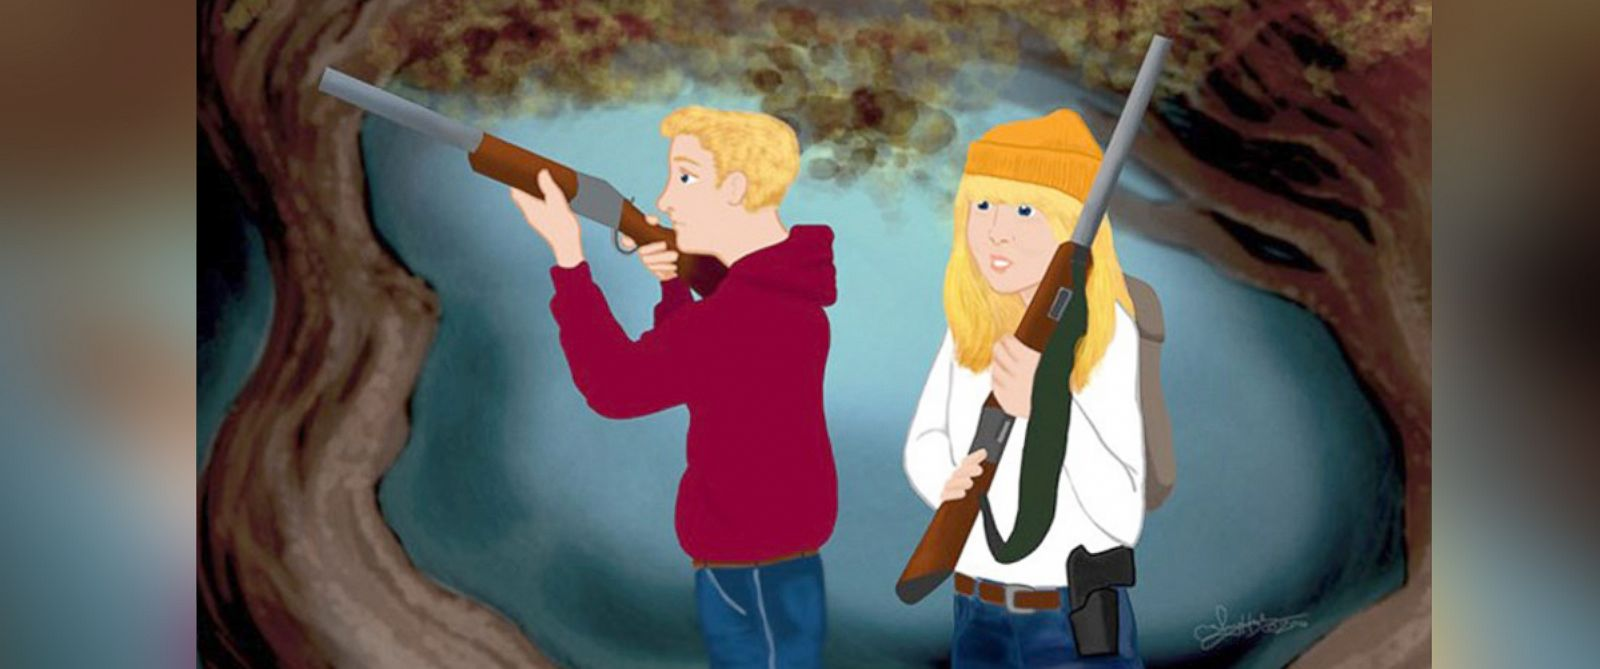 PHOTO: In the NRA Familys revised fairy tale, Hansel and Gretel are supplied with rifles while lost in the woods.